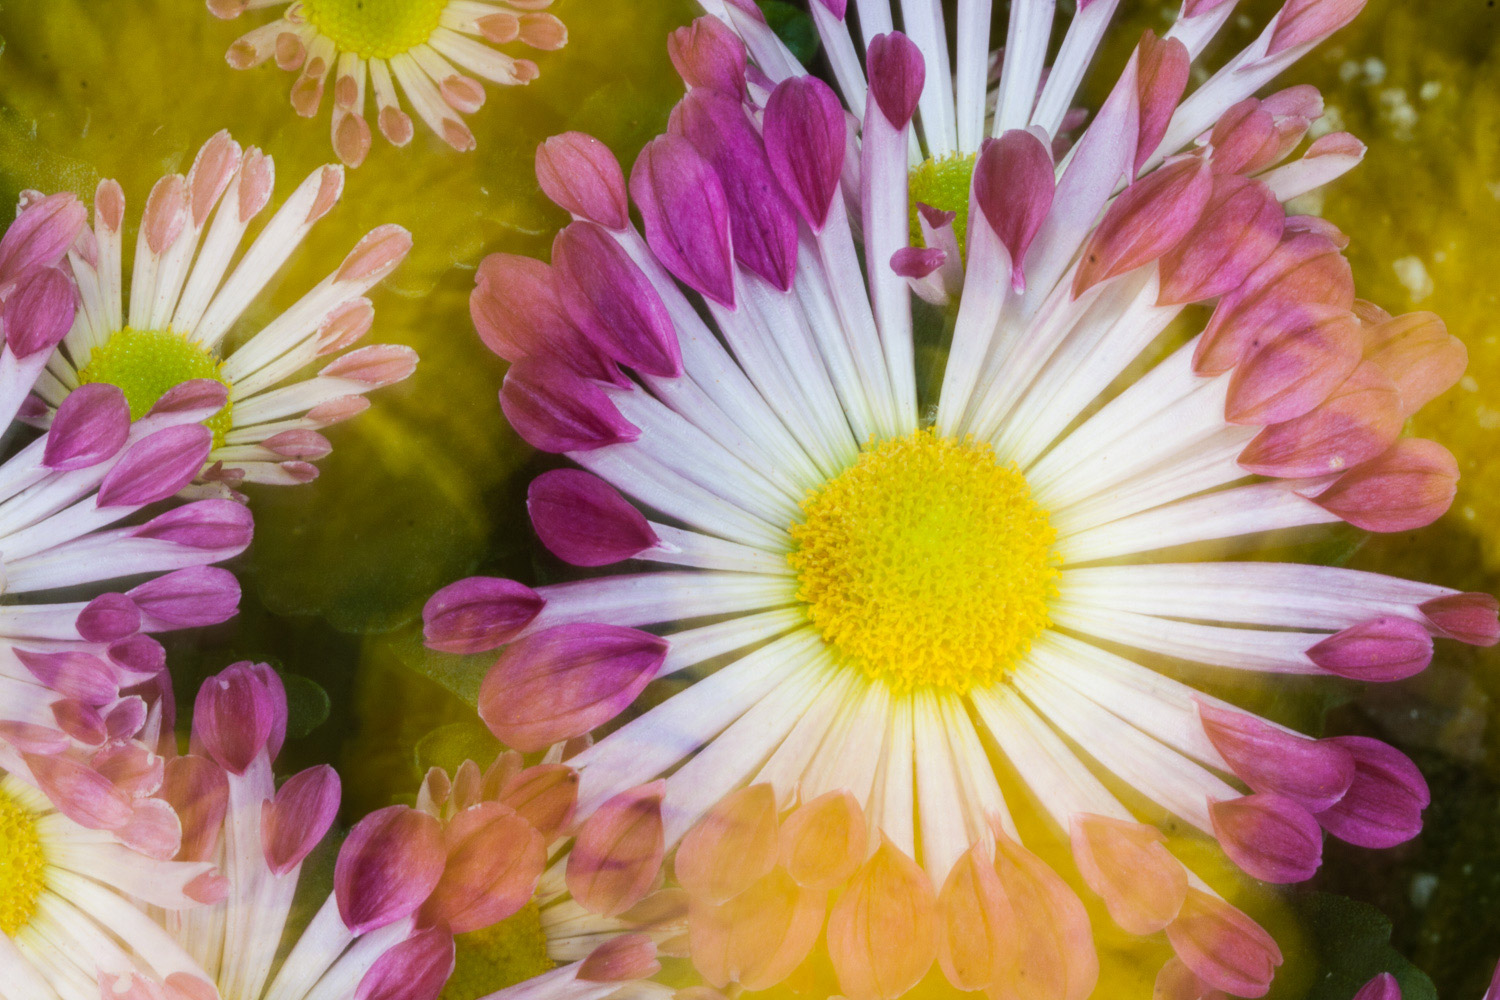 A white flower whose petals end in pink